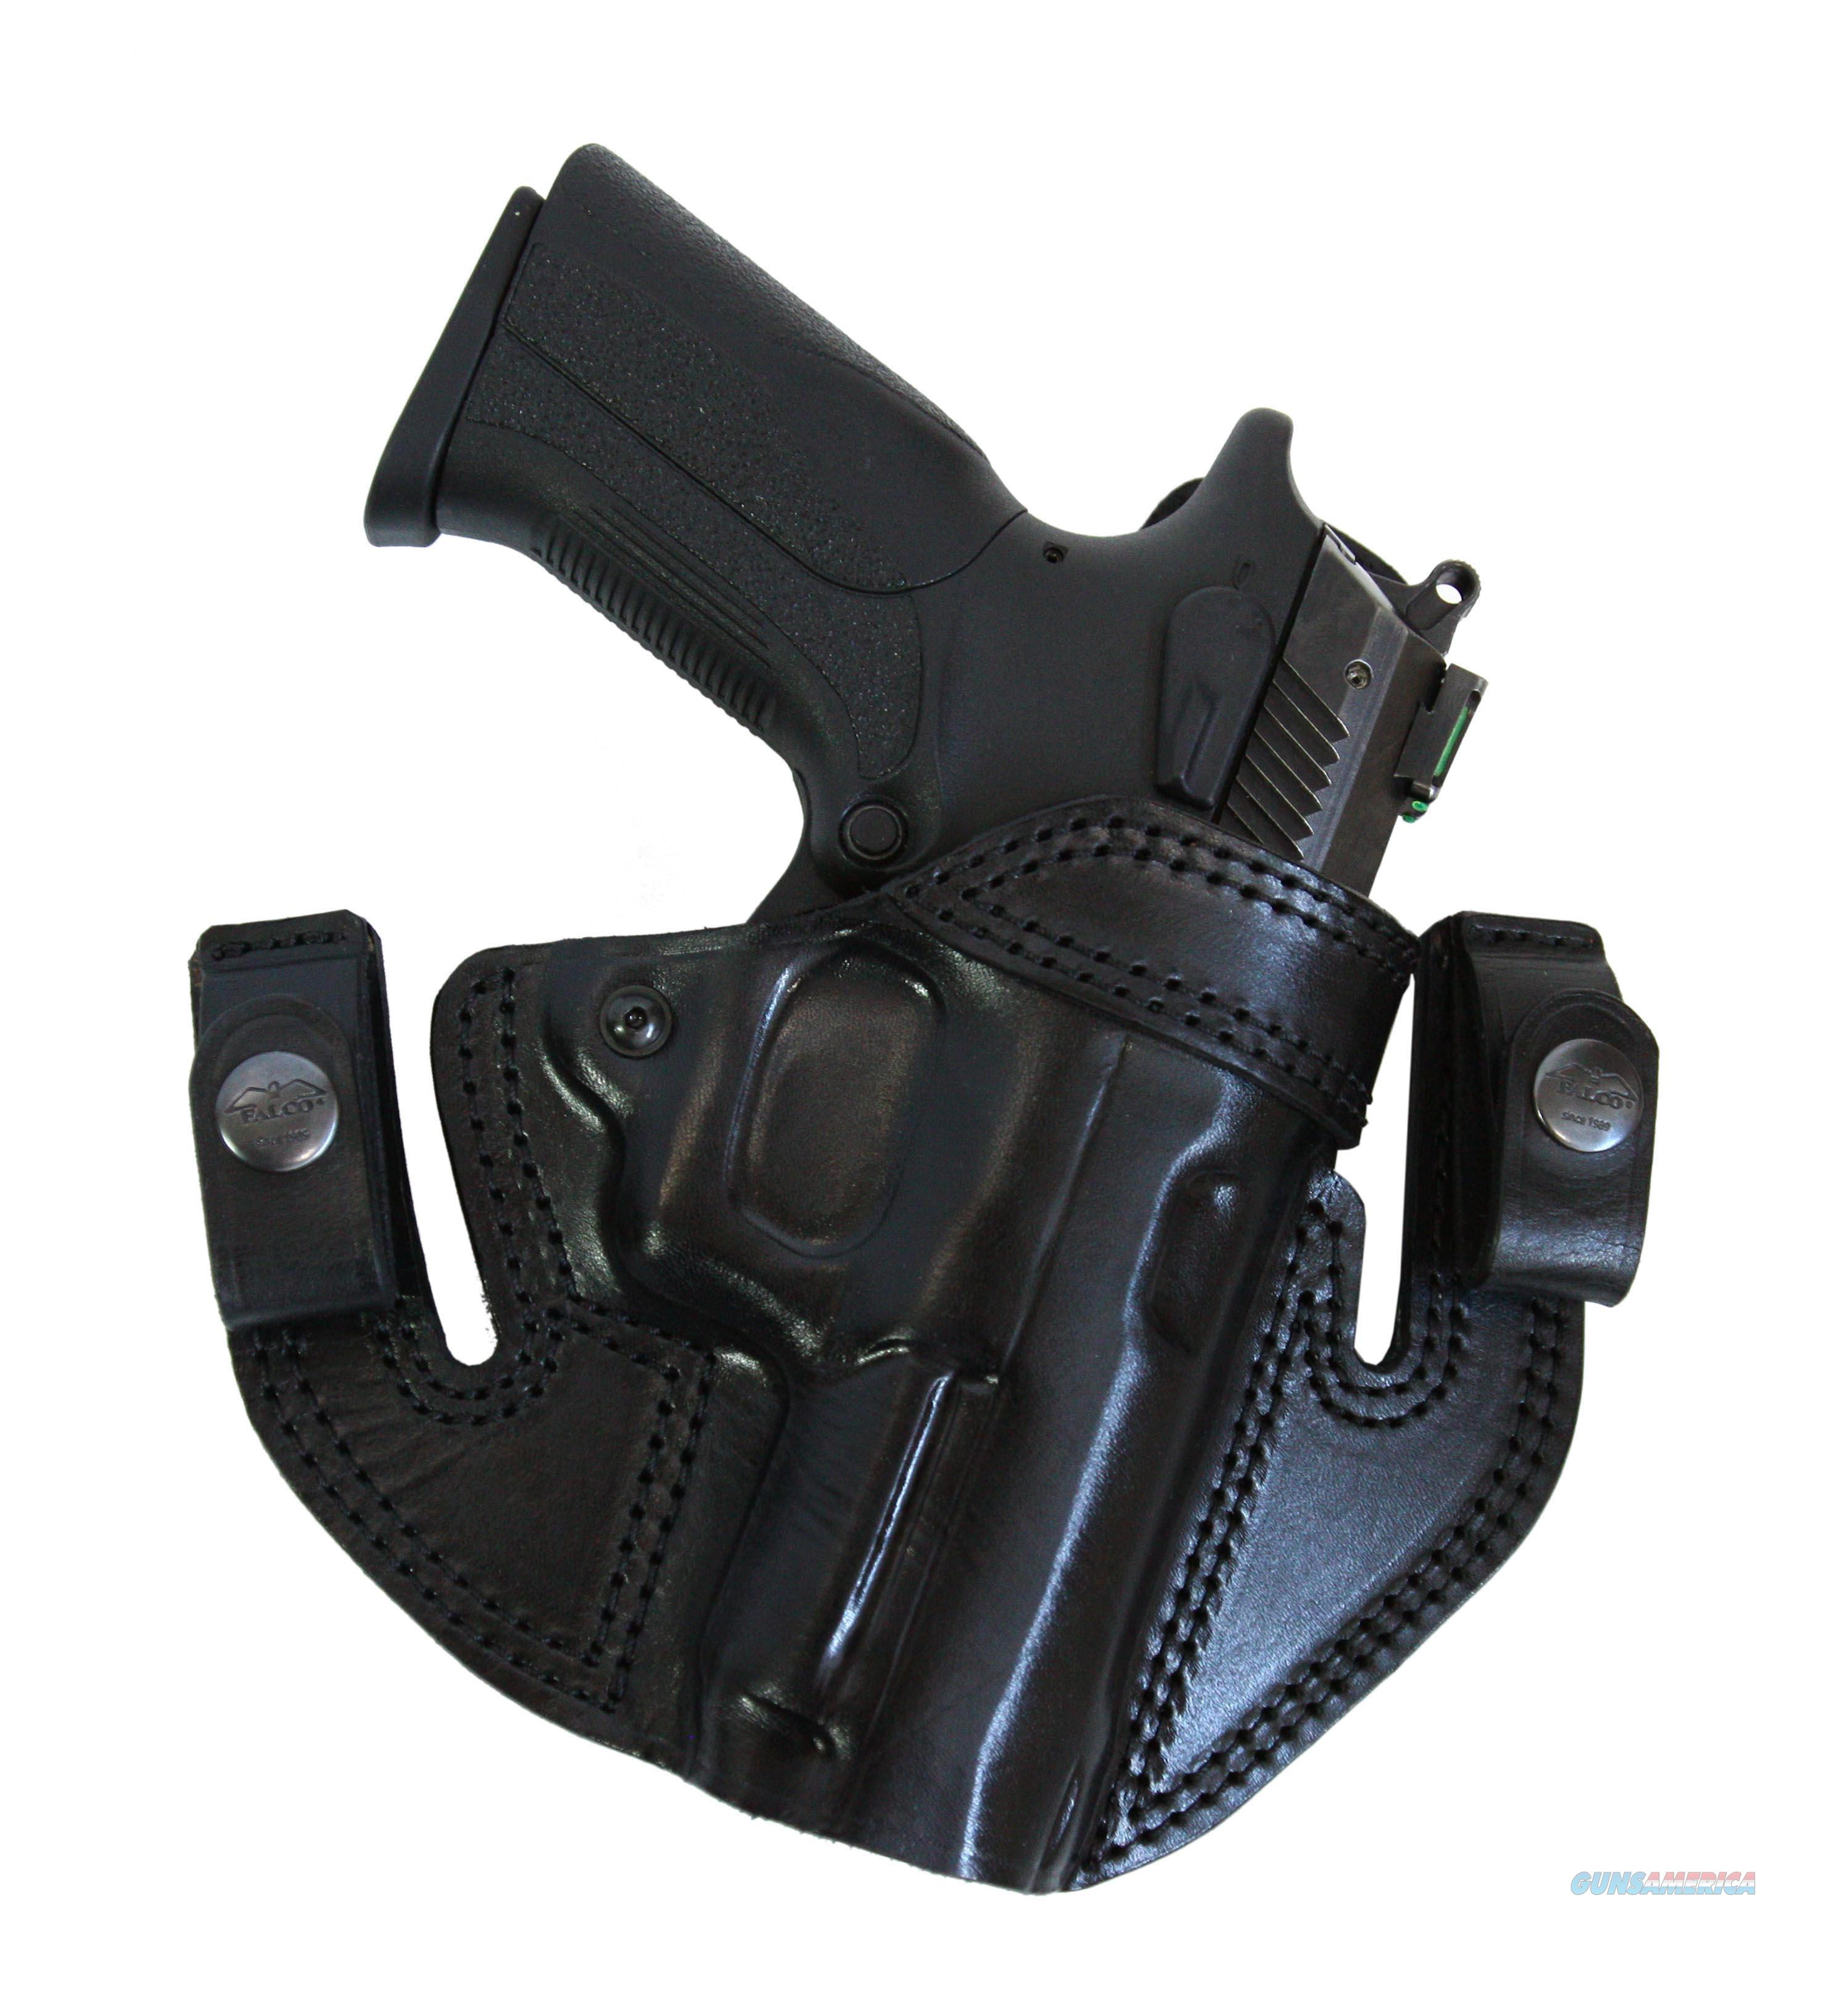 IWB / OWB Leather Gun Holster  Ruger LCR  Non-Guns > Holsters and Gunleather > Concealed Carry